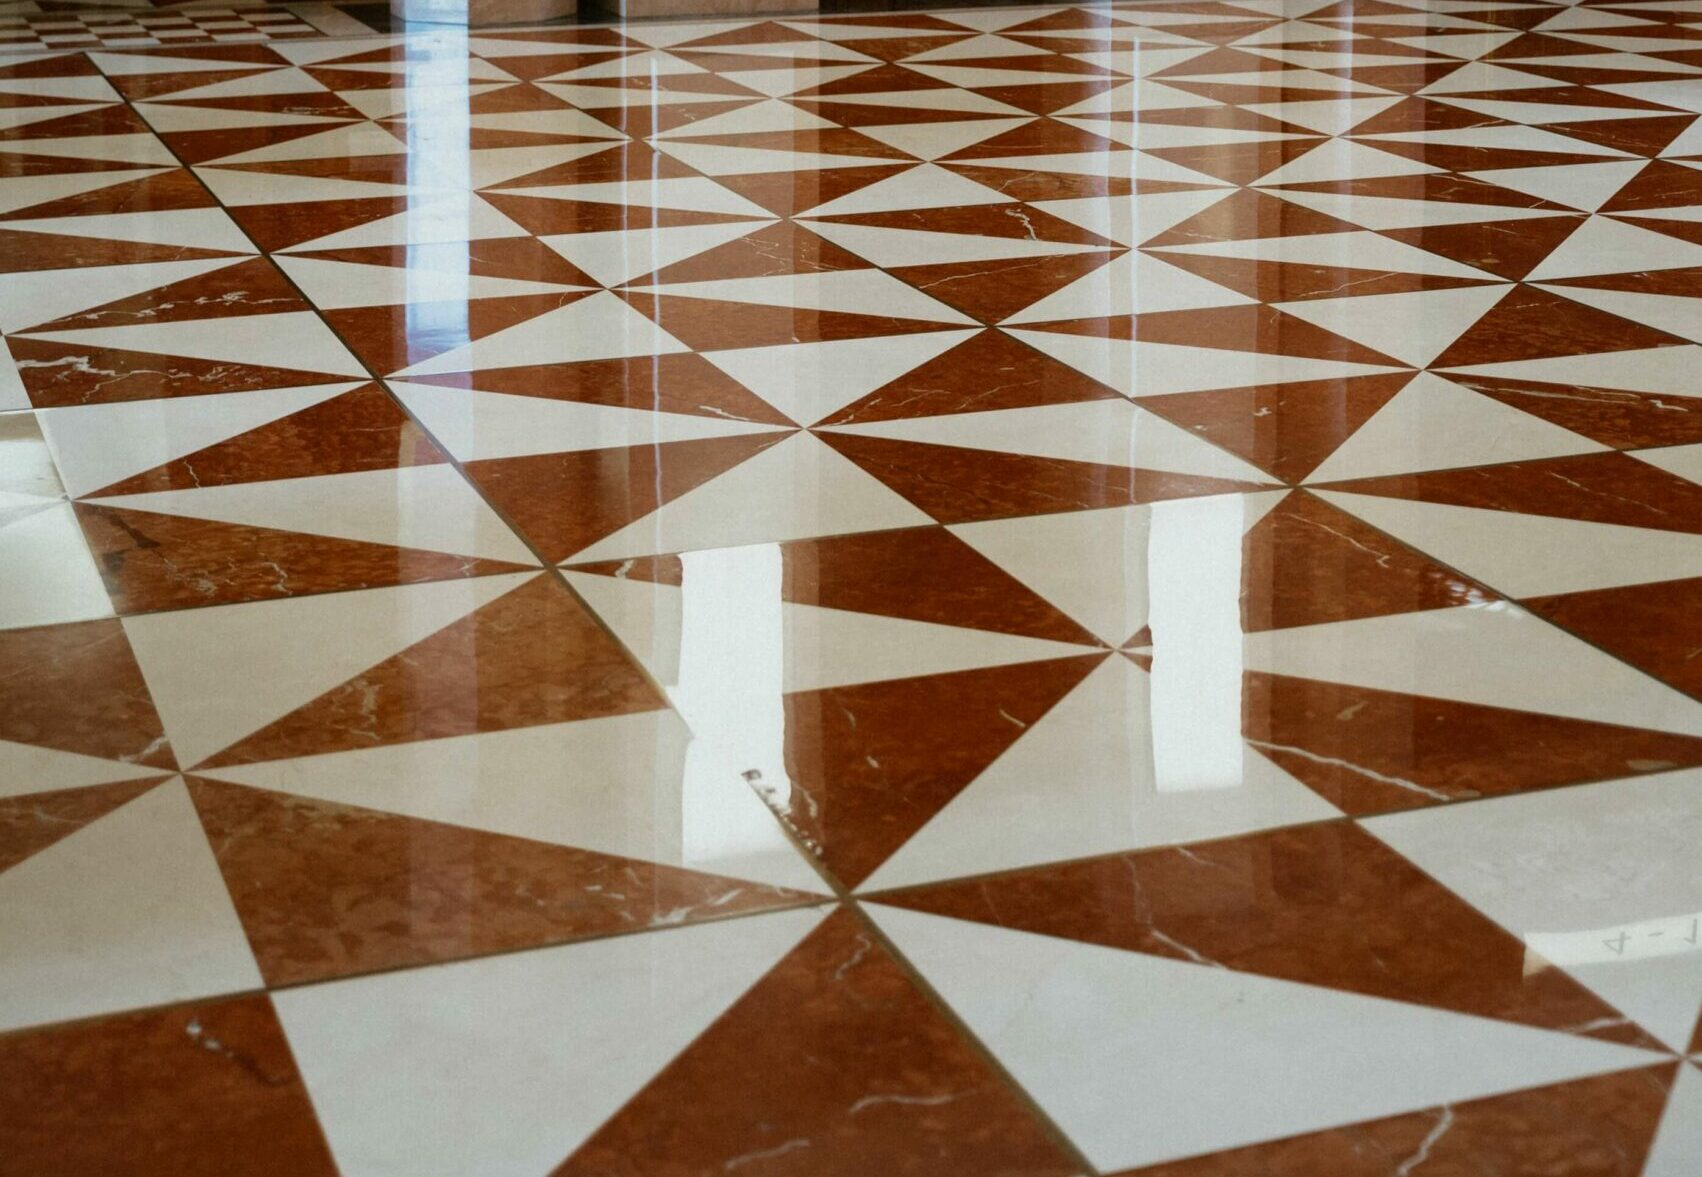 brown and white patterned tile floor